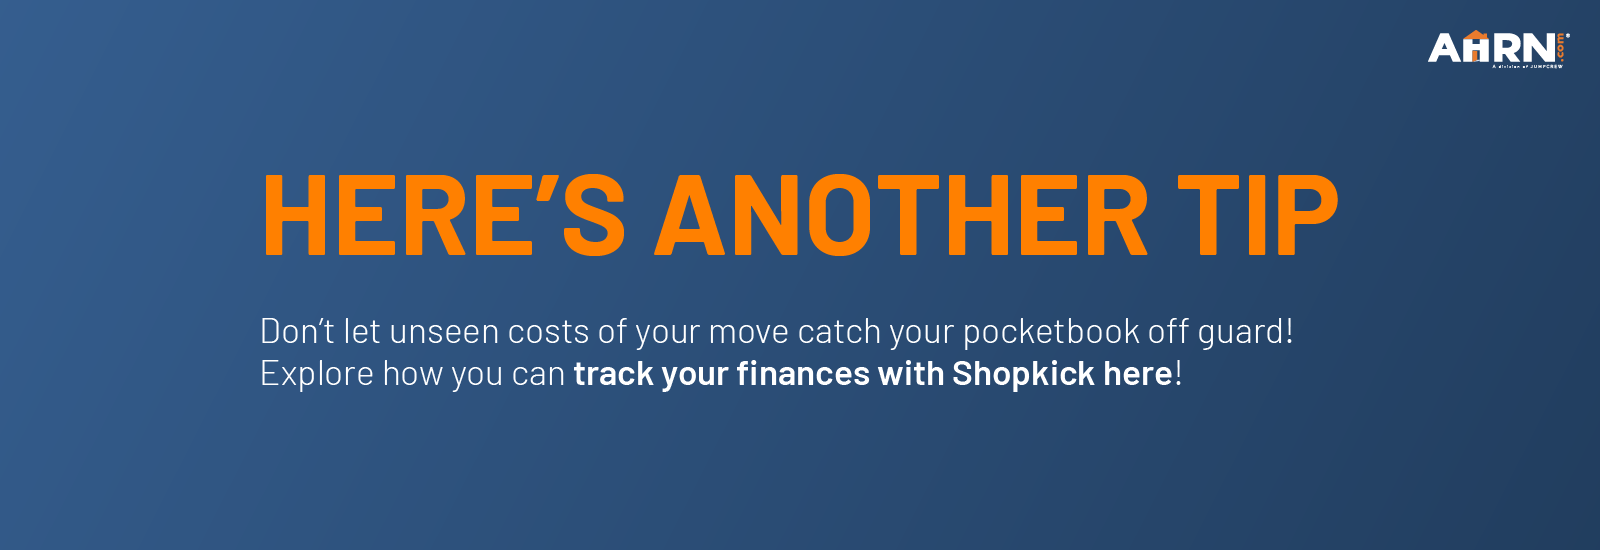 Don't let unseen costs of your move catch your pocketbook off guard! Explore how you can track your finances with Shopkick here!